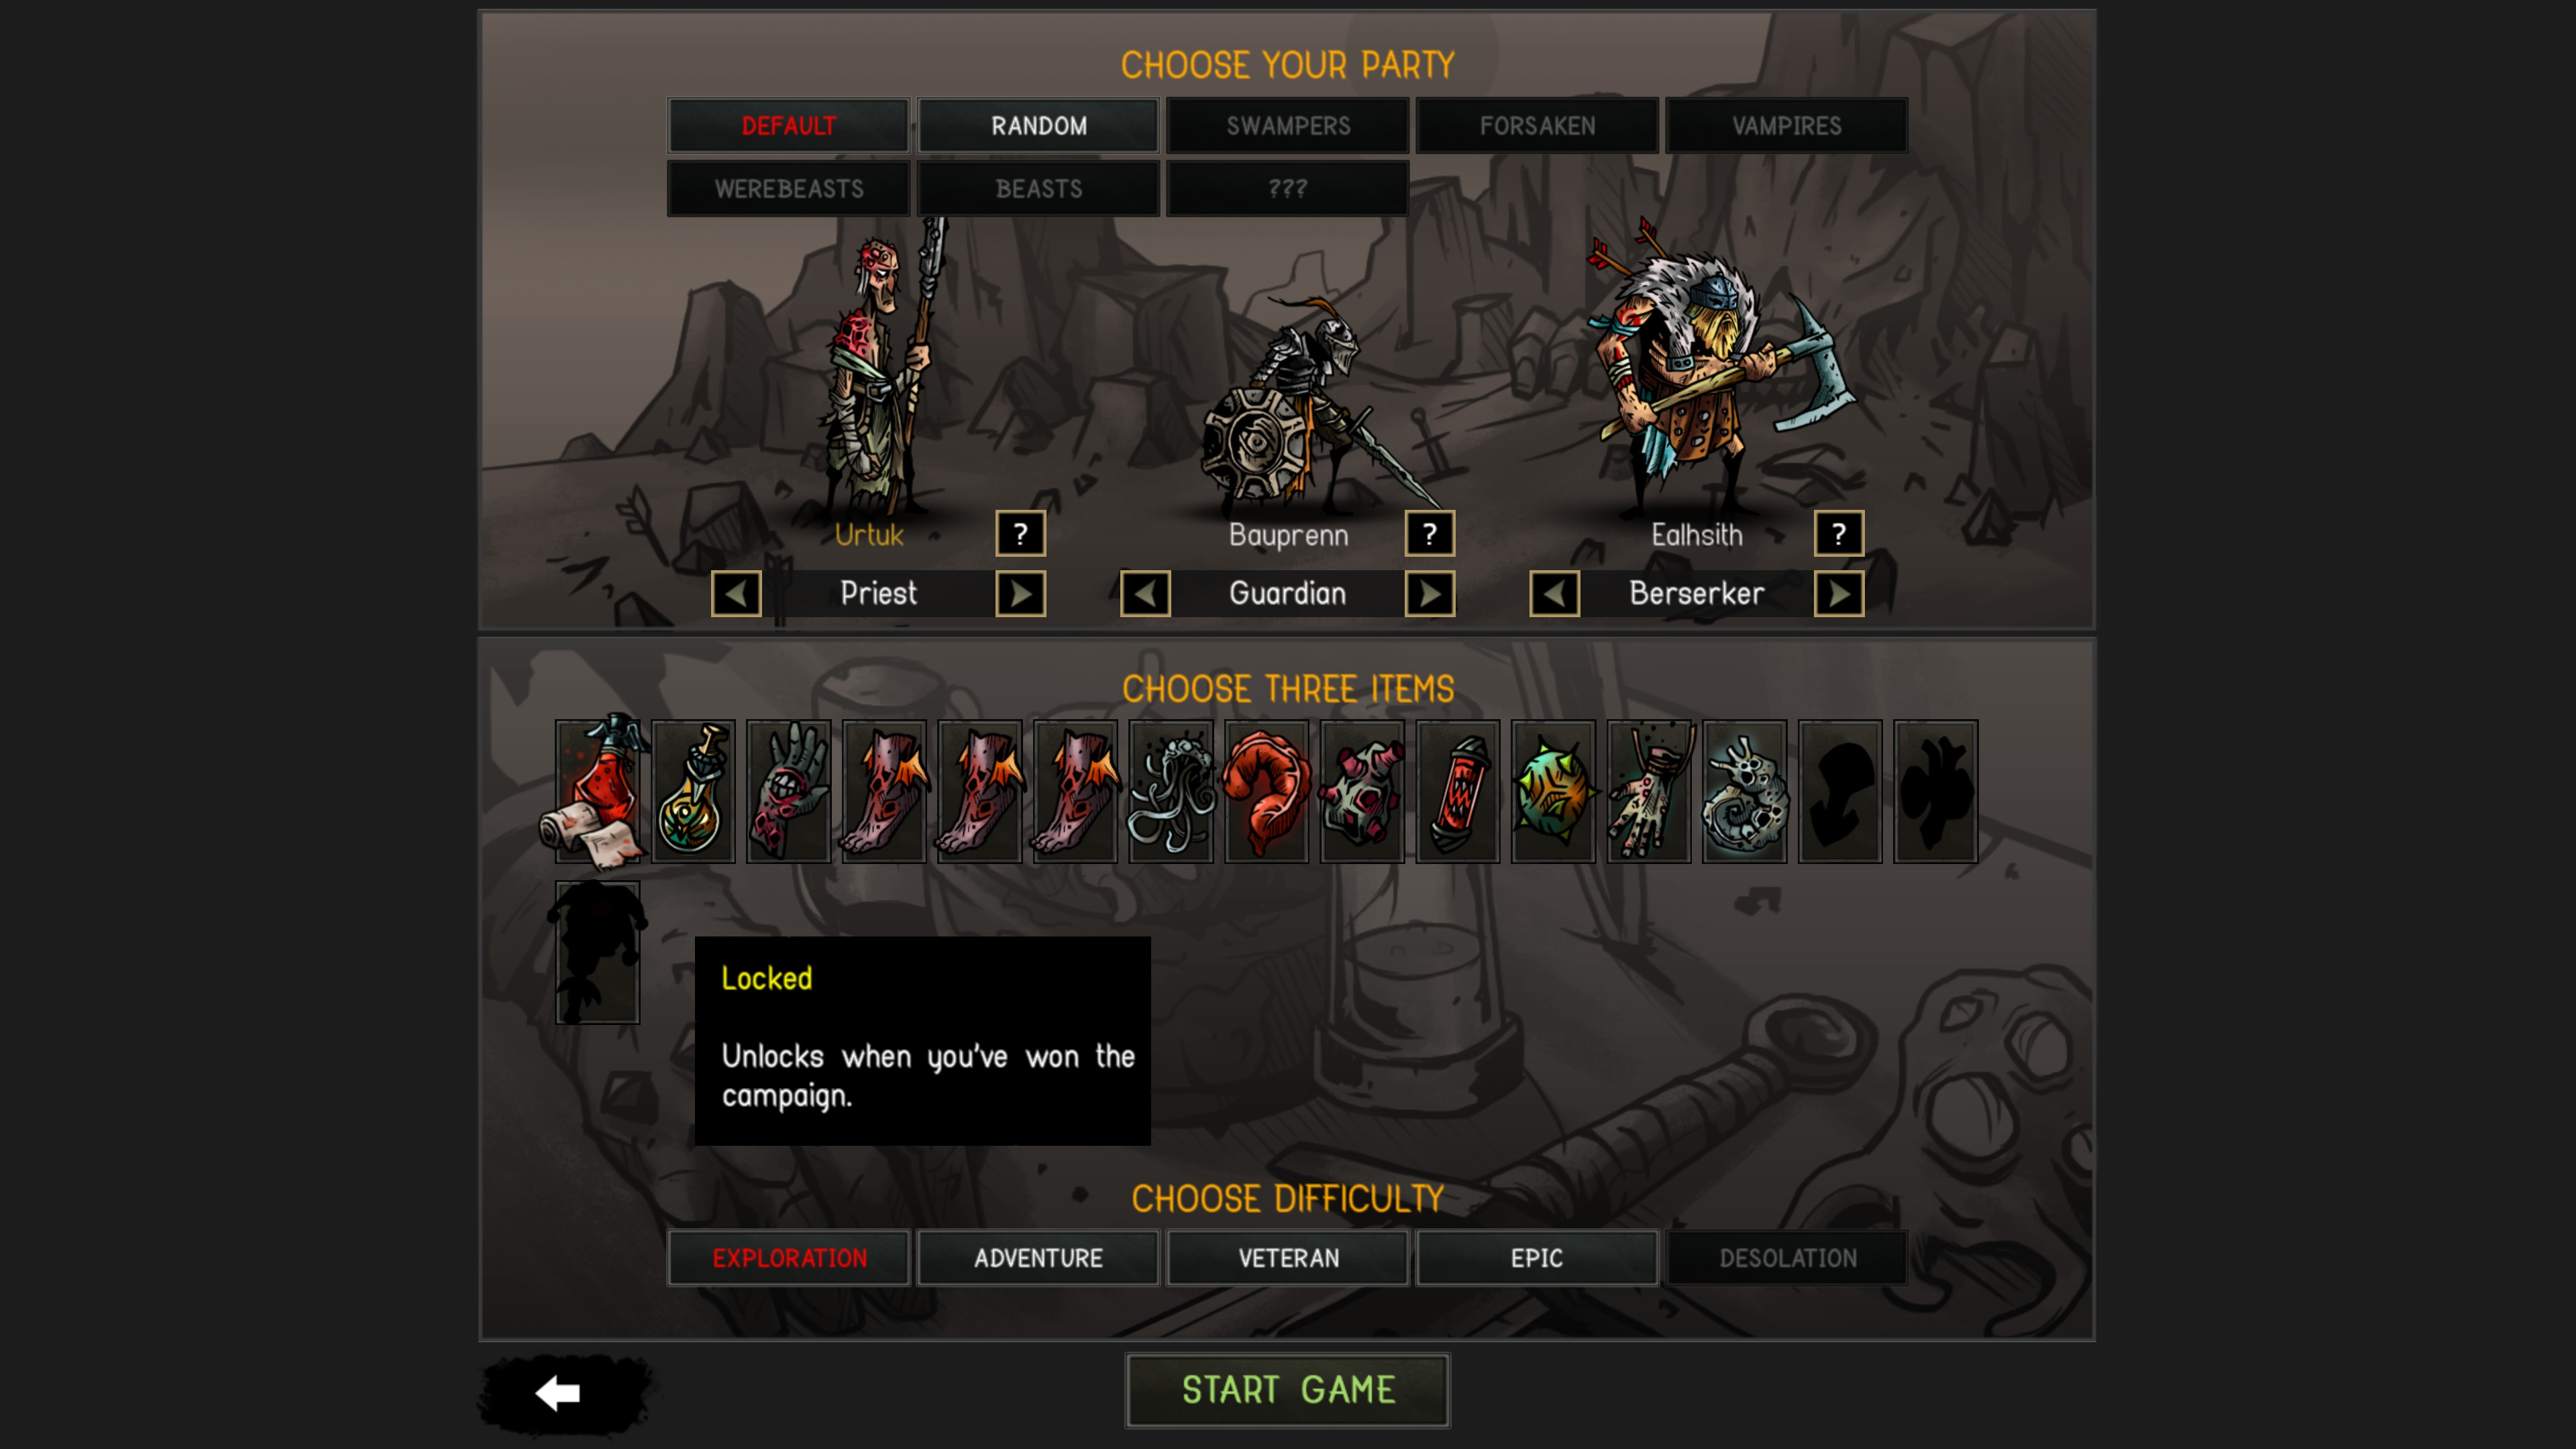 Urtuk  The Desolation. Party selection screen showing 7 factions, 3 characters, 14 starting item options, and 5 difficulties. One locked item is highlighted and show the text: unlocks when you've won the campaign.